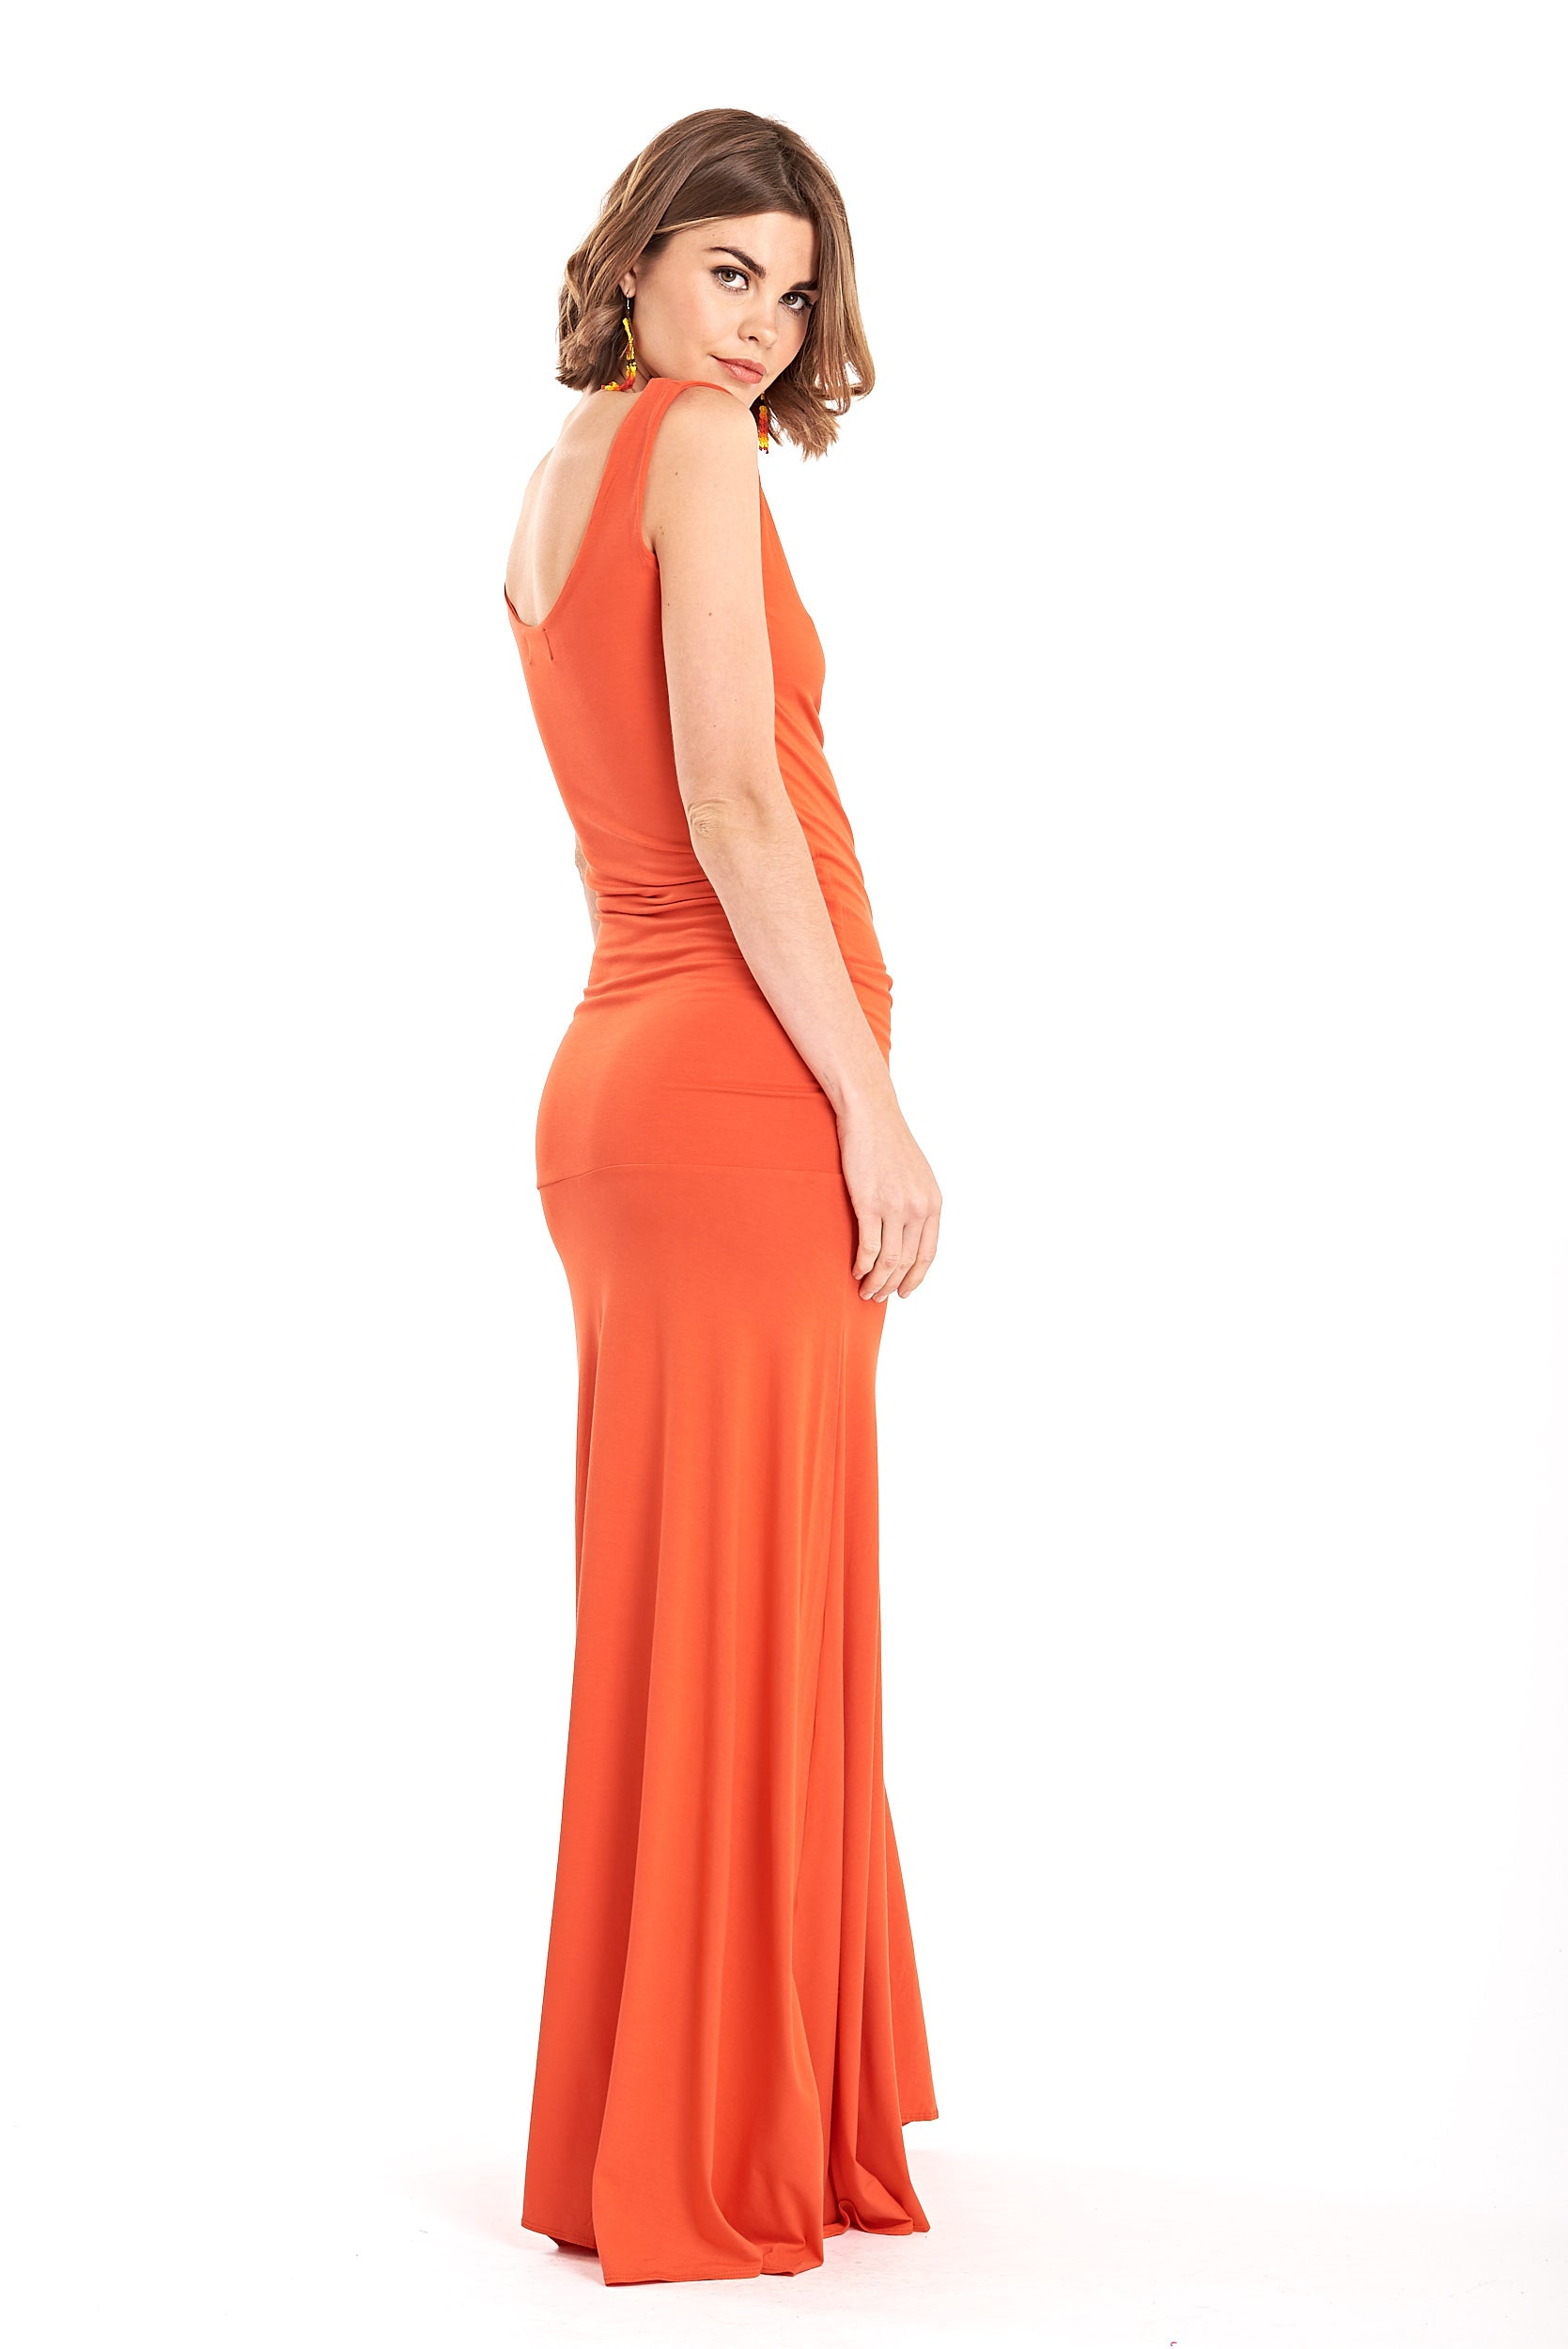 Bamboo Flamenco Dress Spicy Orange